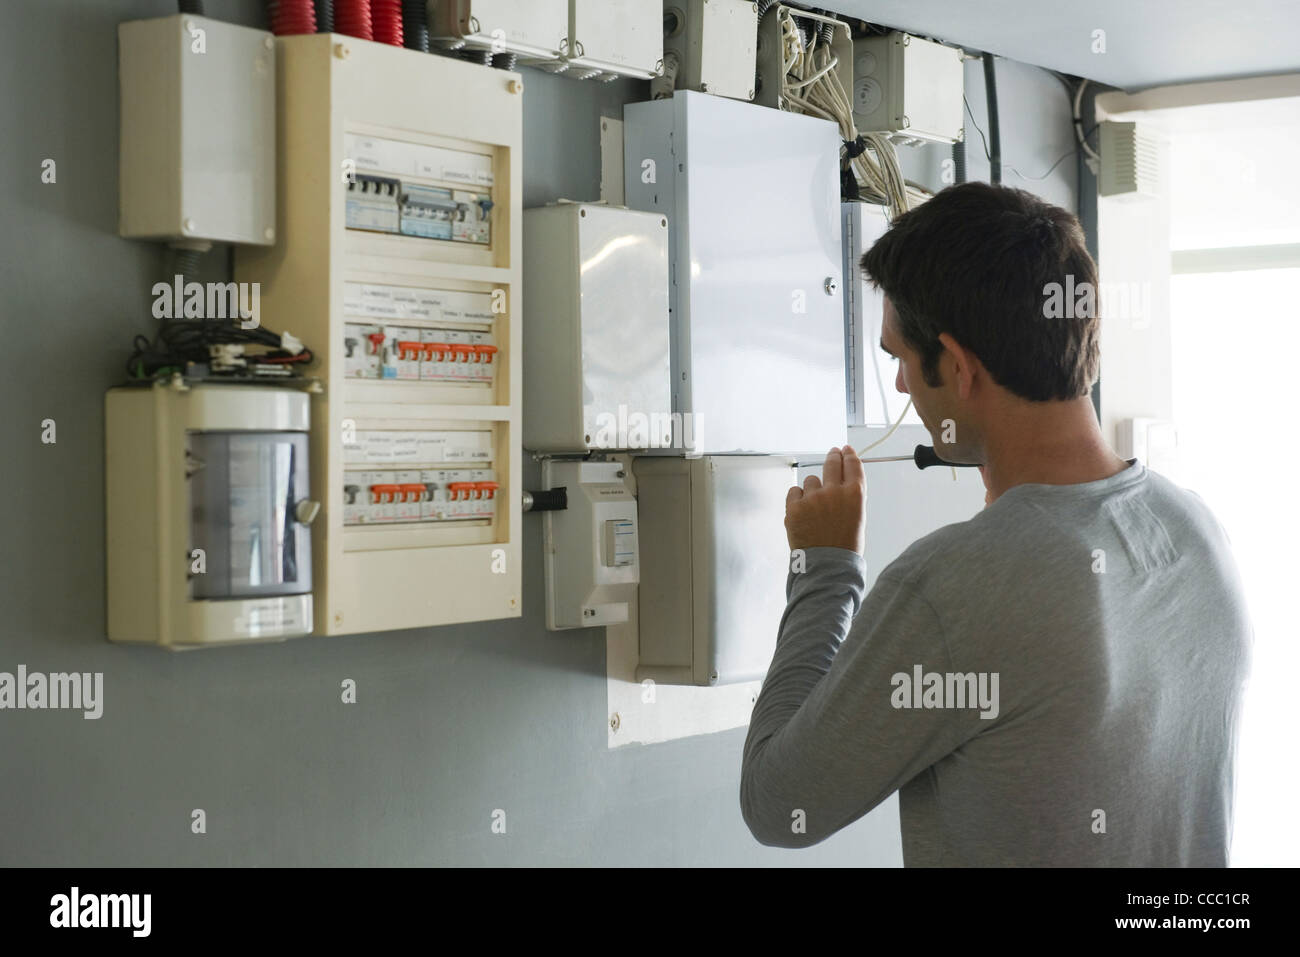 Man opening fuse box, rear view - Stock Image